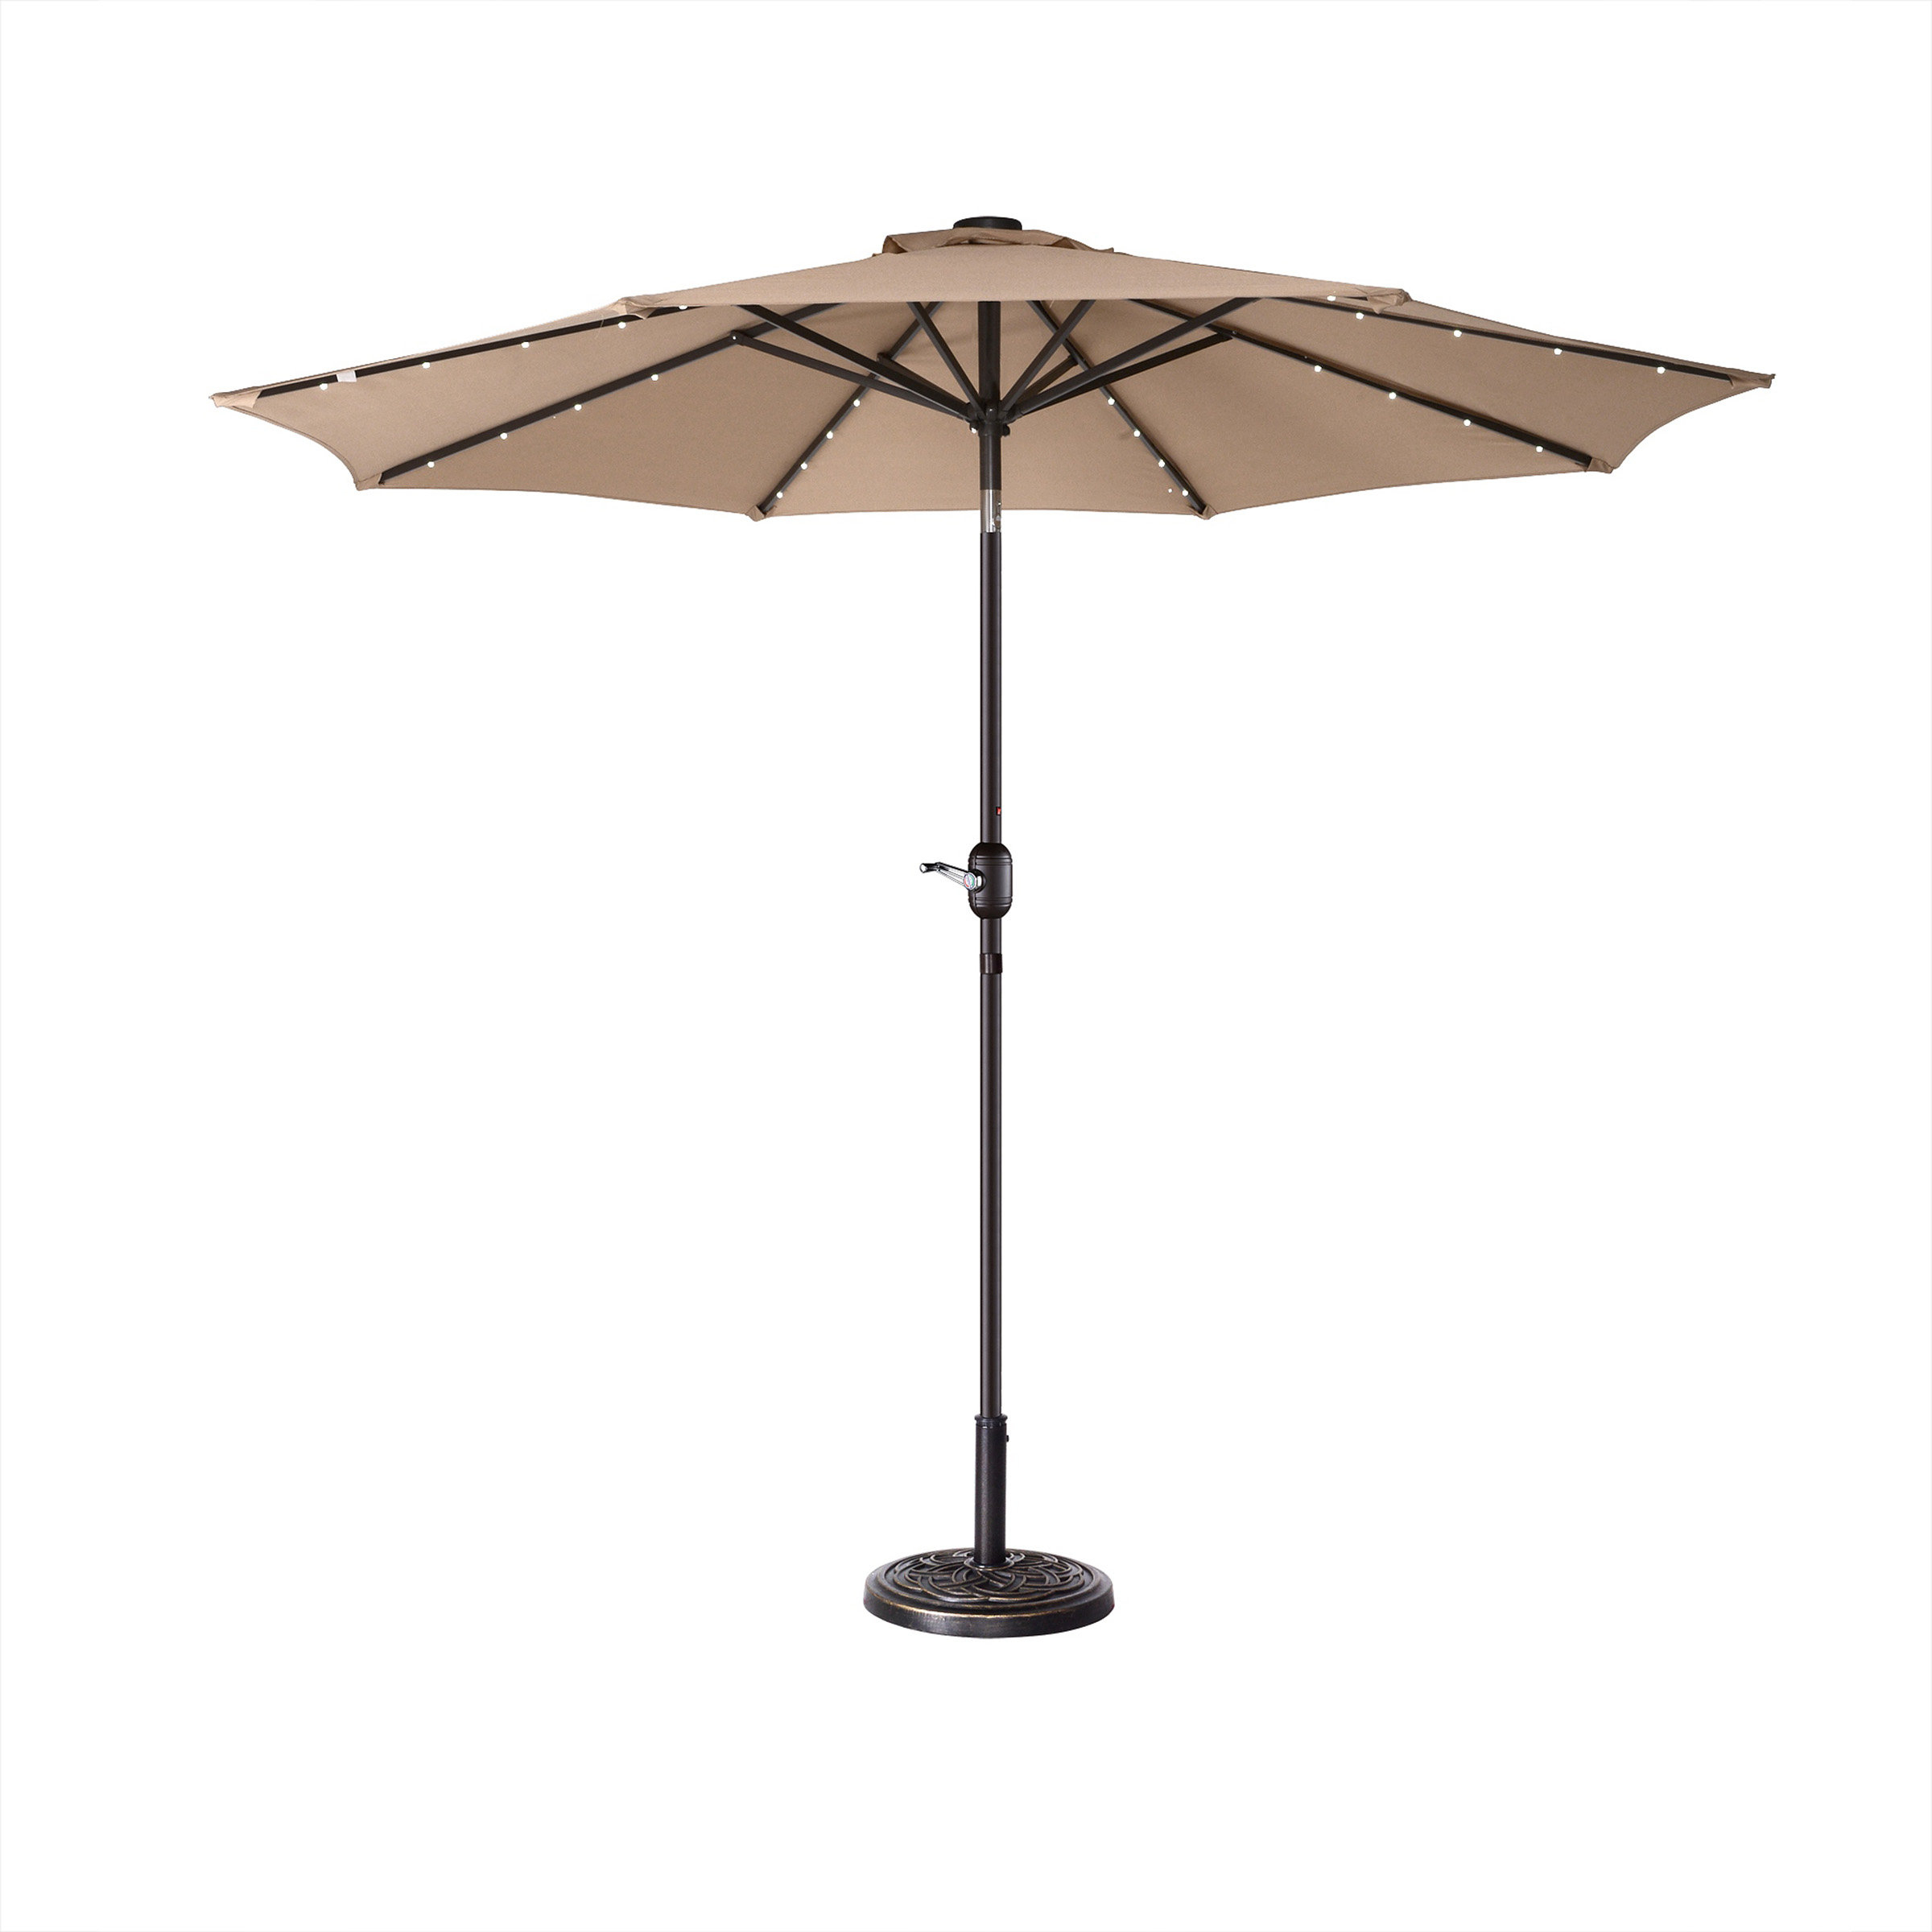 Fashionable Colburn Half Market Umbrellas Pertaining To Coggeshall Led Lighted 9' Market Umbrella (View 15 of 20)